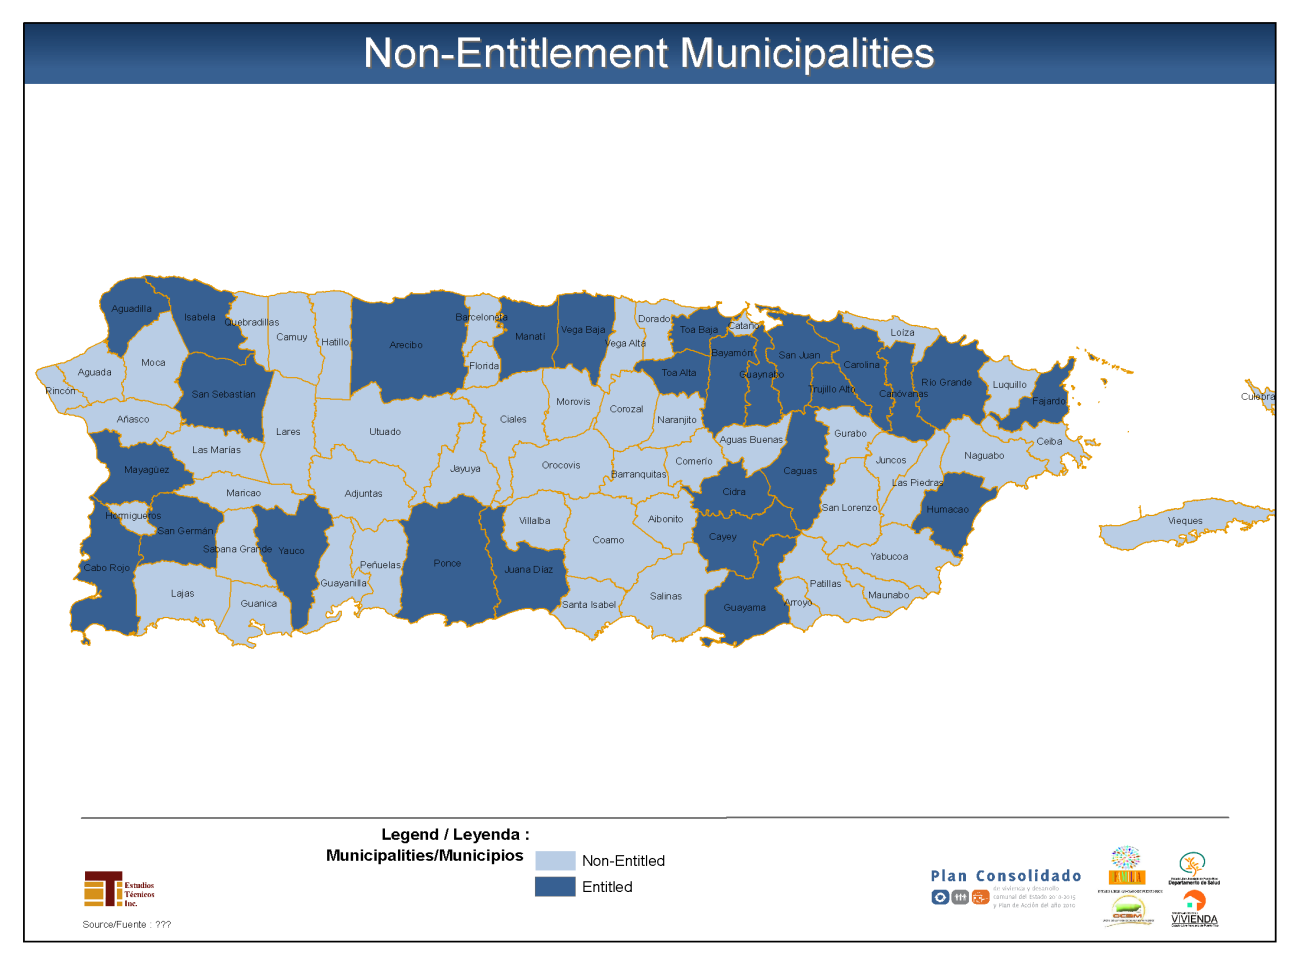 GEOGRAPHIC DISTRIBUTION The following figure presents the location of the 51 non-entitlement municipalities of Puerto Rico that we could classify as targeted areas within the non-entitlement